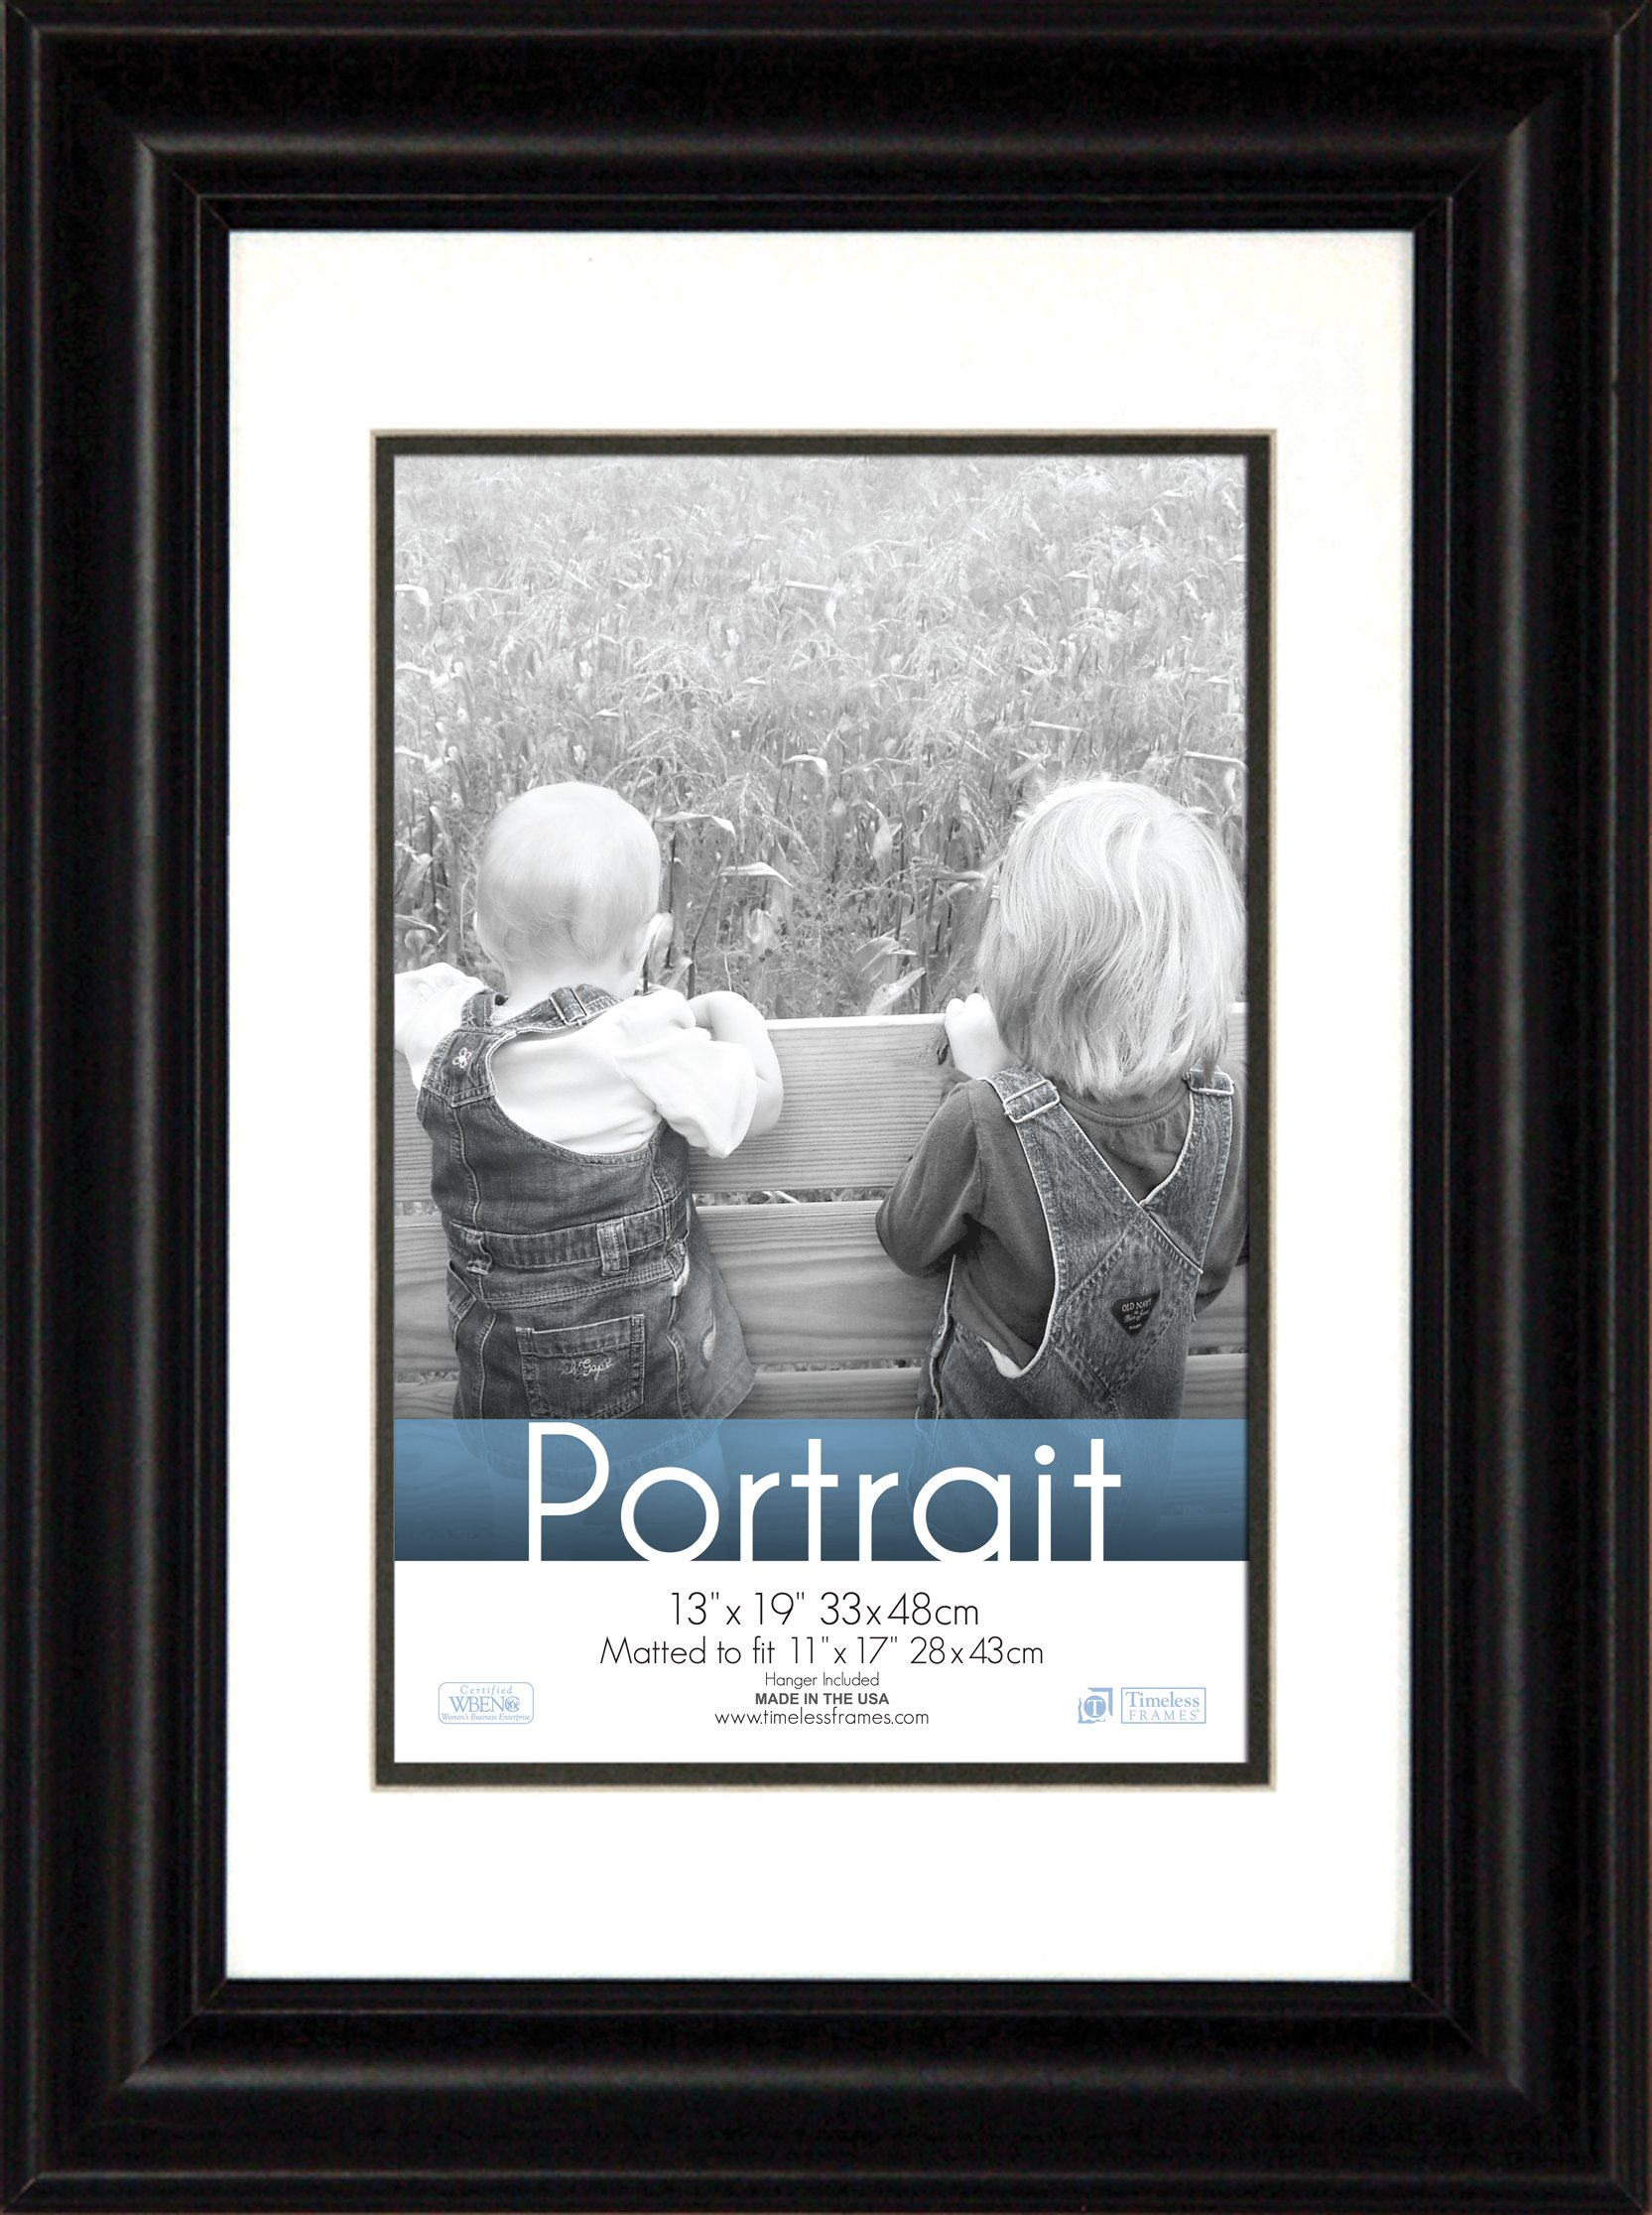 Timeless Frames 13x19 Inch Fits 11x17 Inch Photo Lauren Portrait Wall Frame, Black by Timeless Expressions (Image #1)